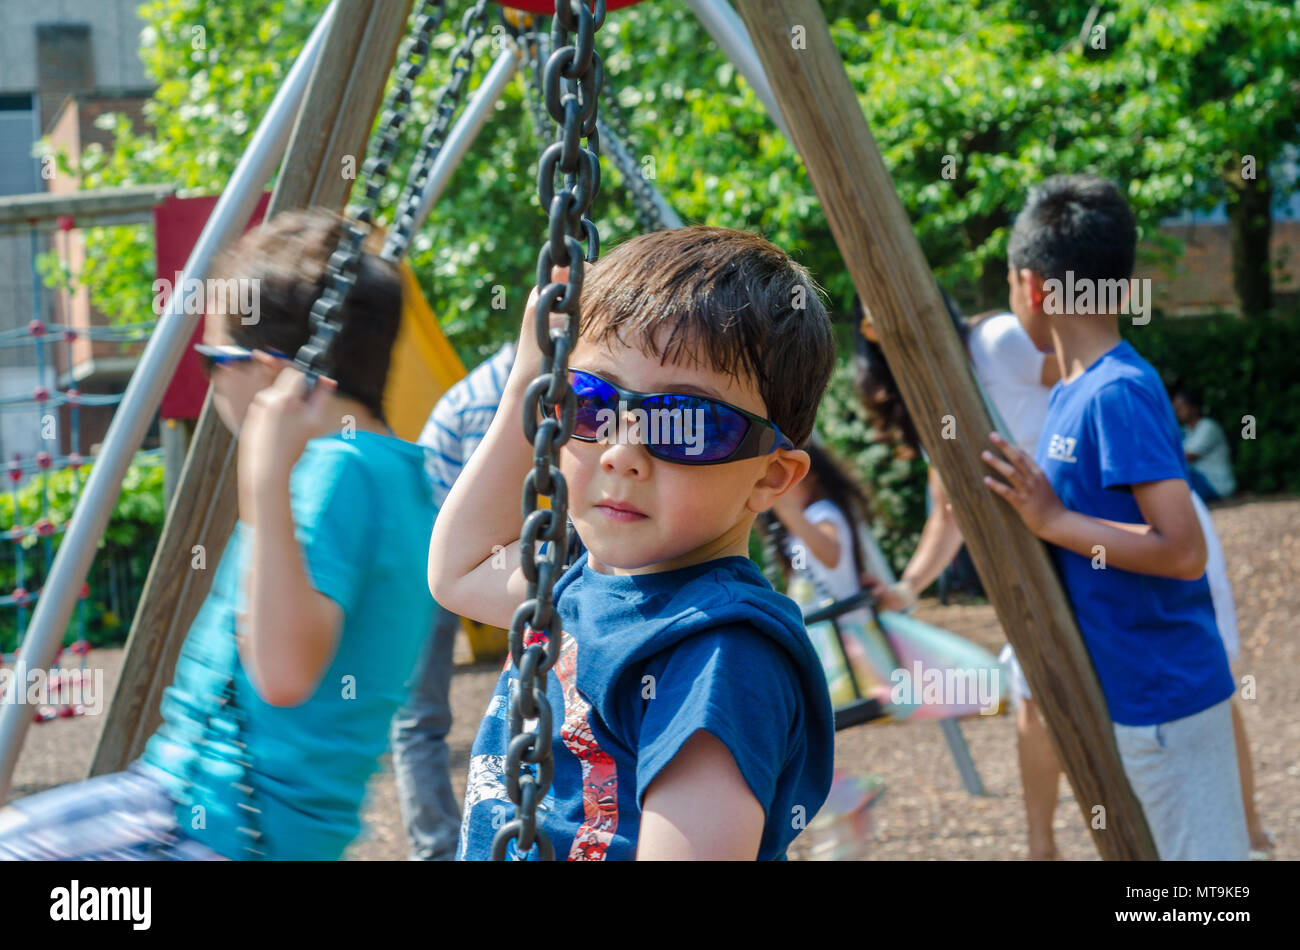 a-young-boy-play-on-swings-in-the-childrens-playground-in-bachelors-acre-in-windsor-uk-MT9KE9.jpg